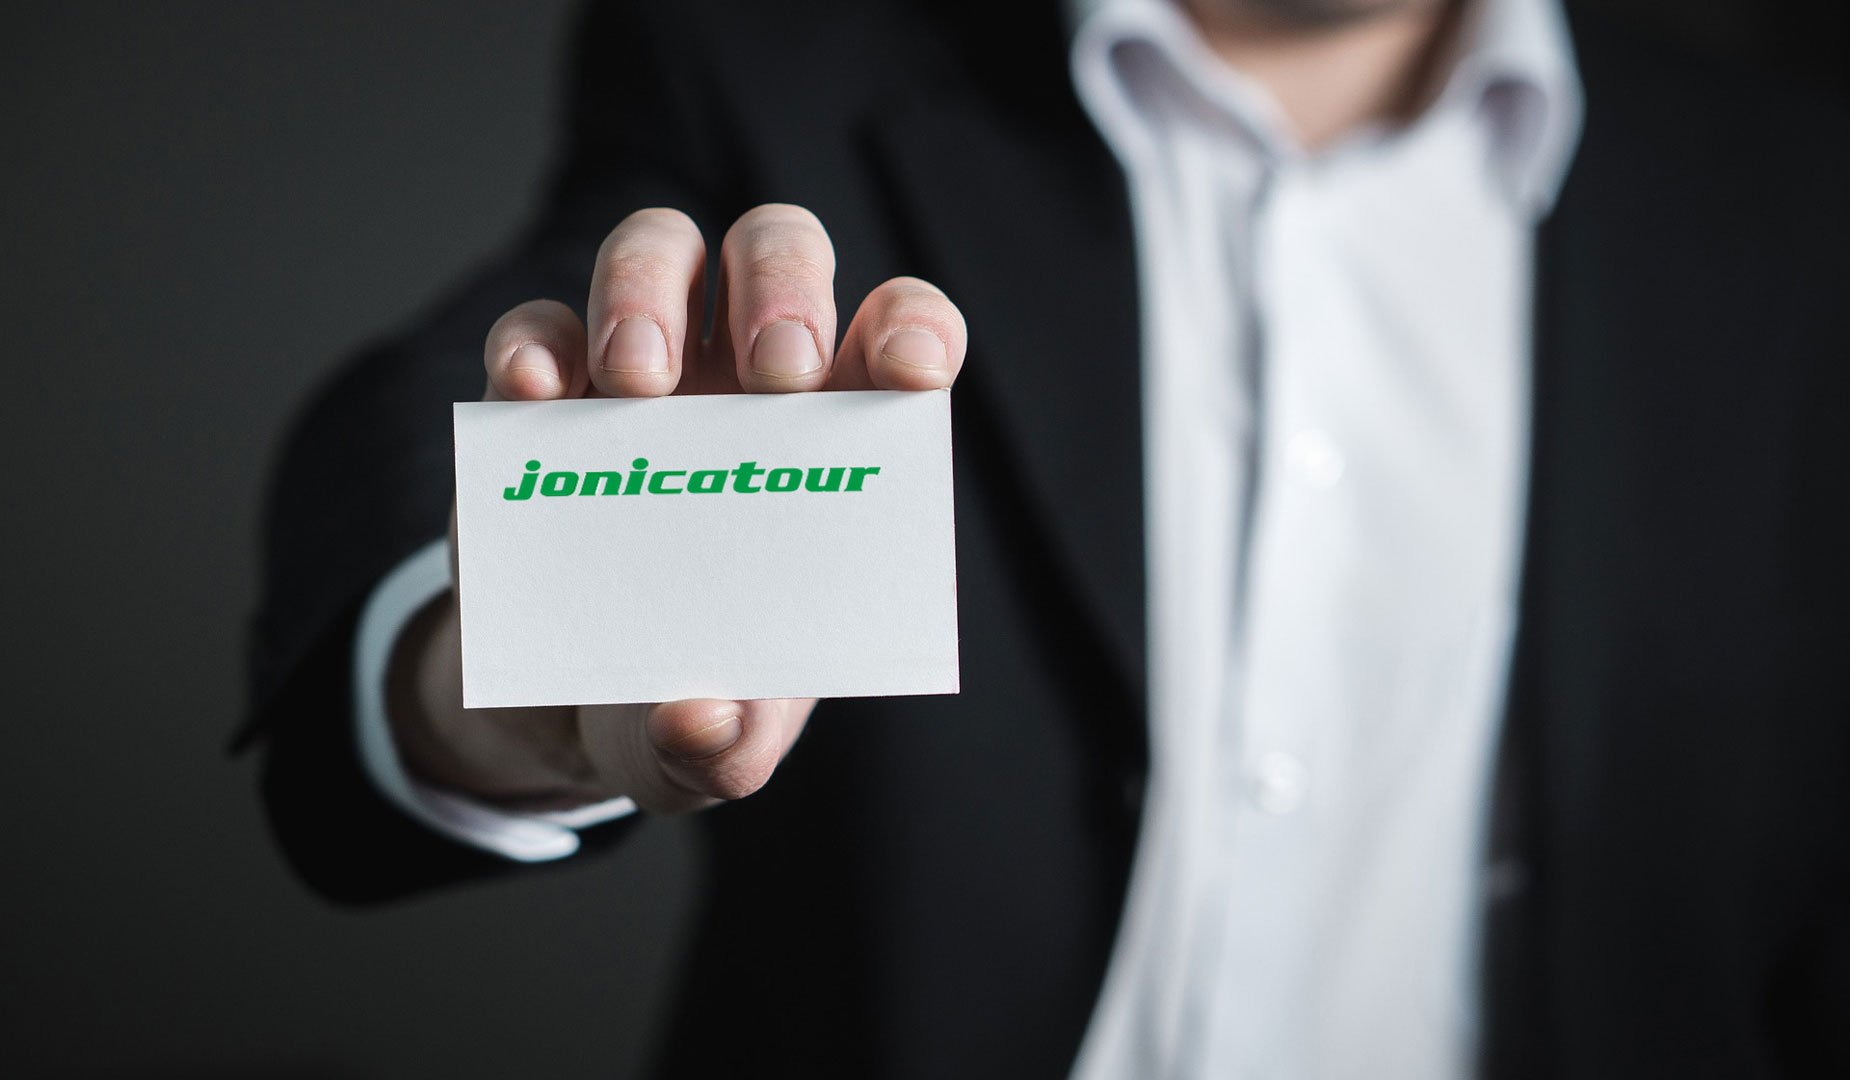 jonicatour business card